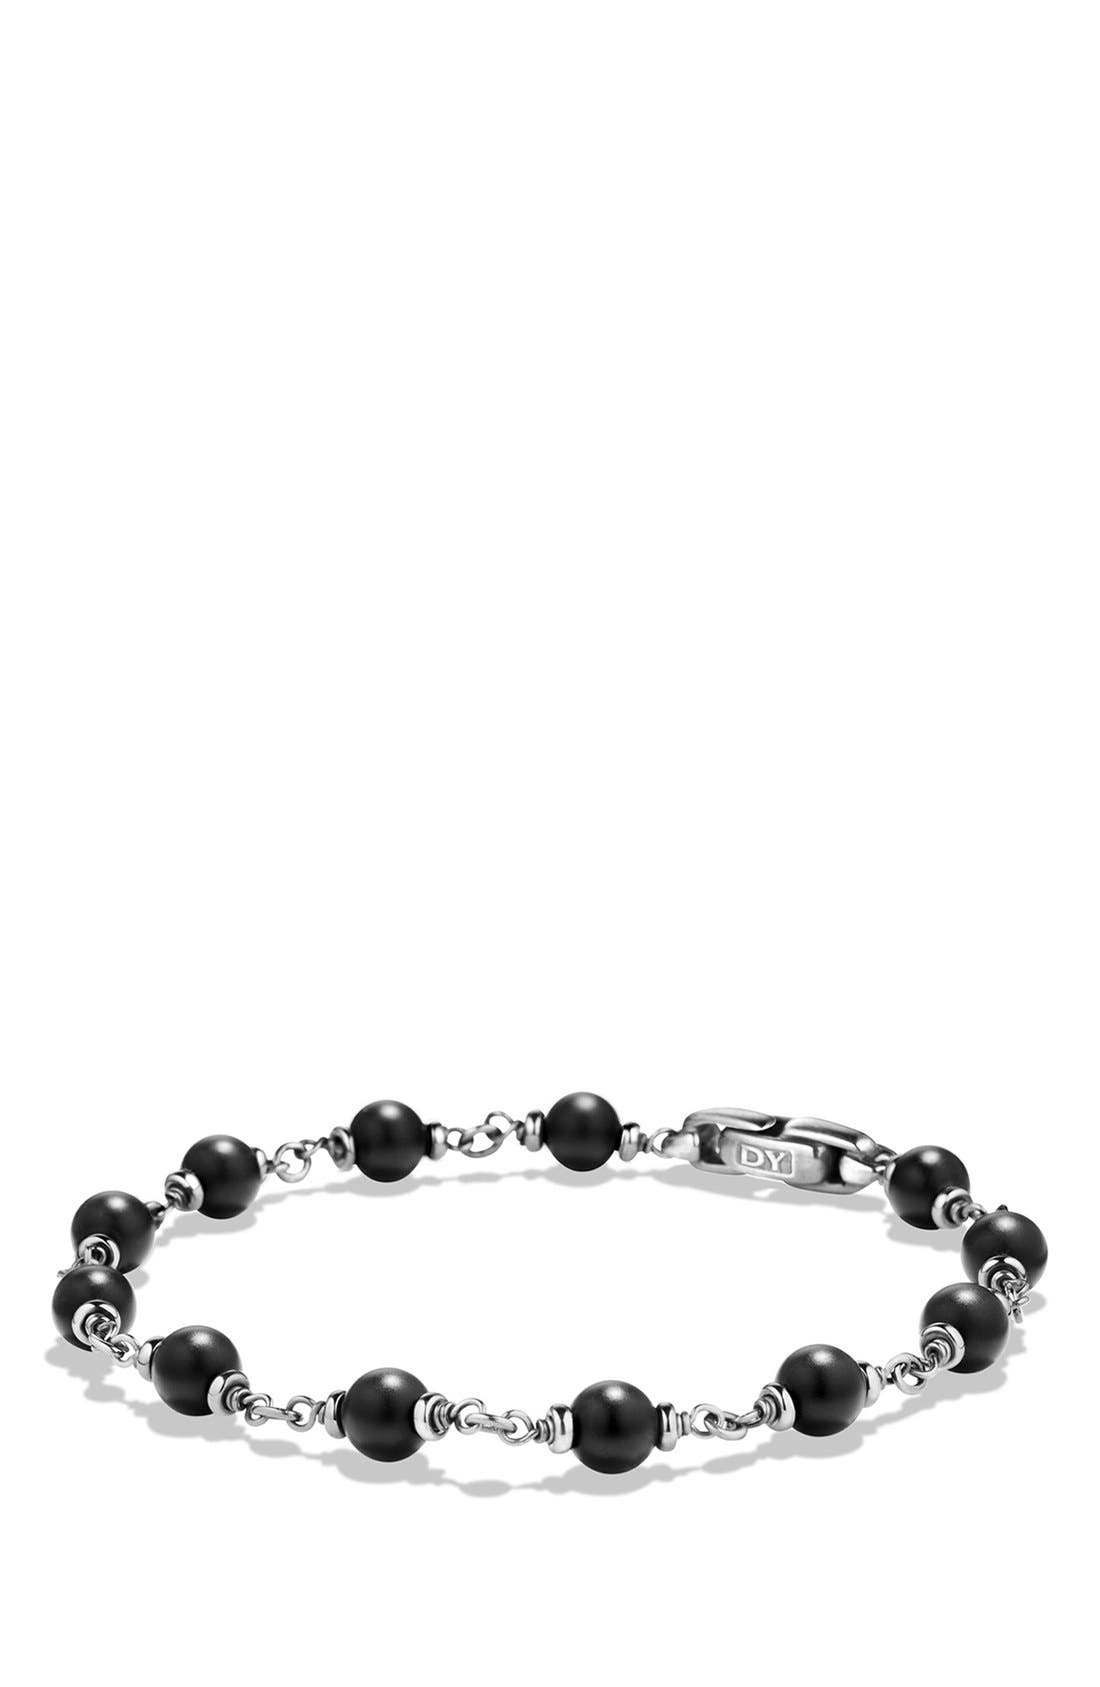 'Spiritual Beads' Rosary Bead Bracelet,                             Alternate thumbnail 2, color,                             Black Onyx